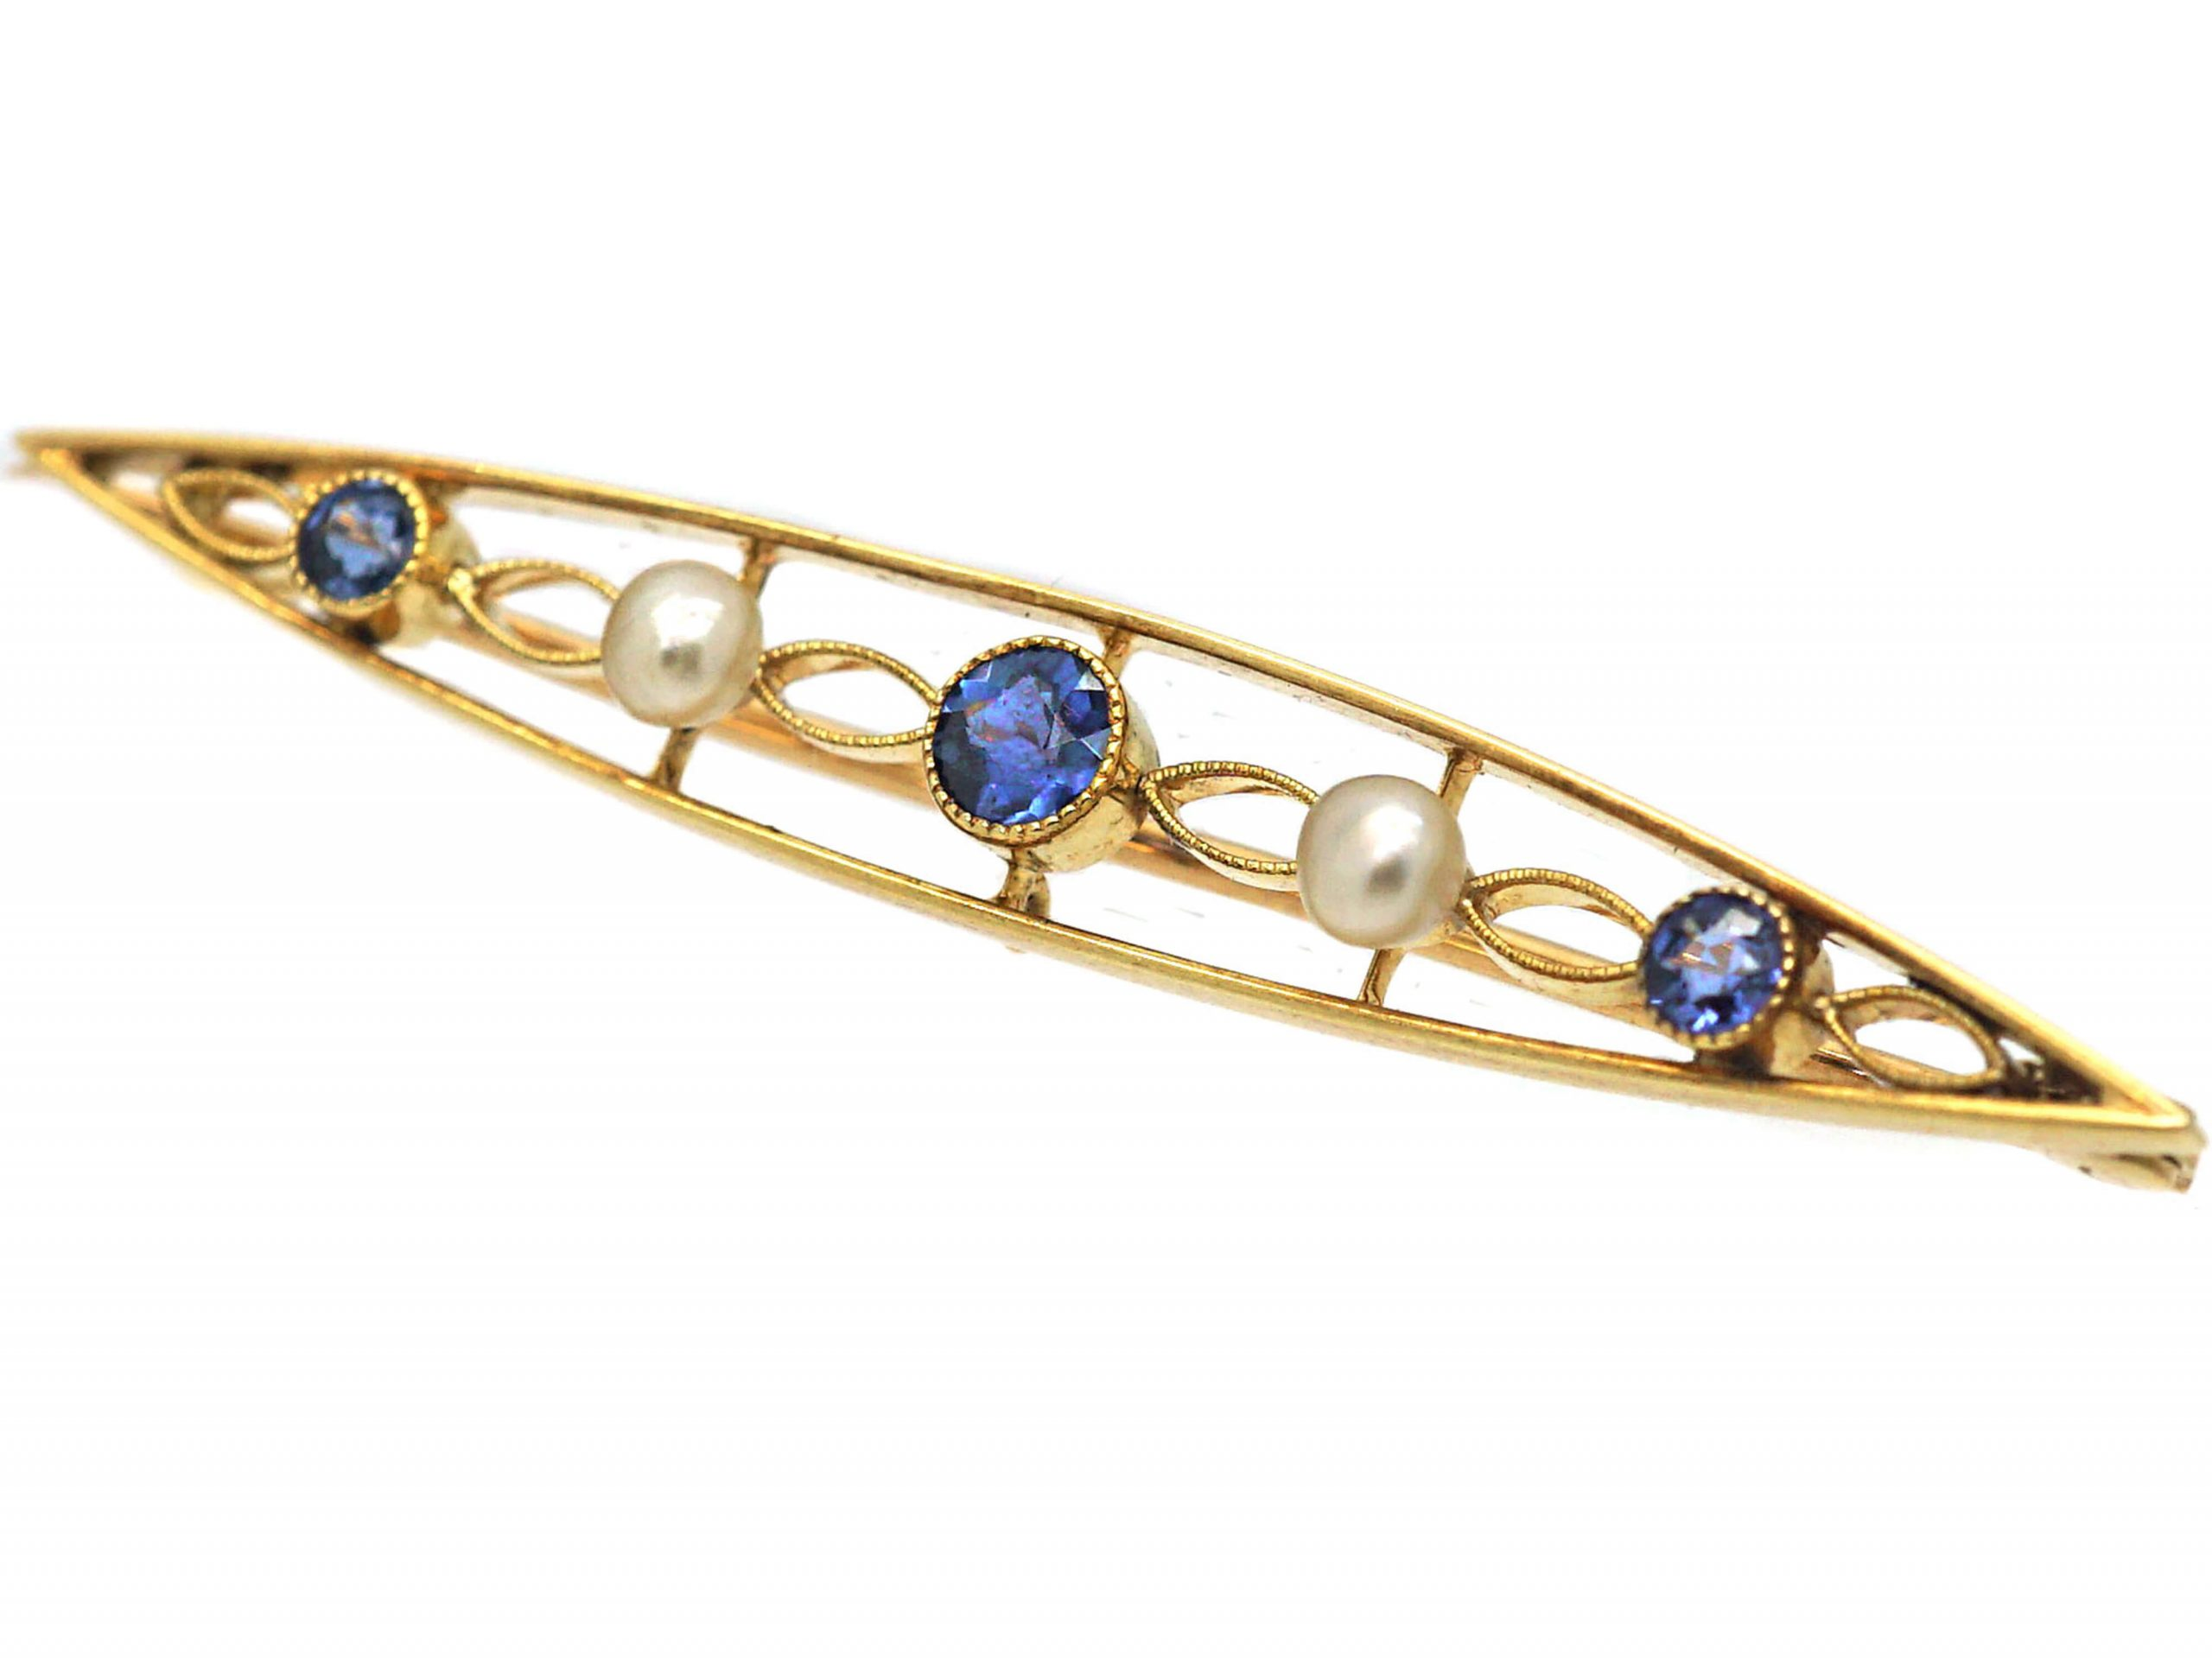 Edwardian 15ct Gold Brooch set with Sapphires & Natural Pearls